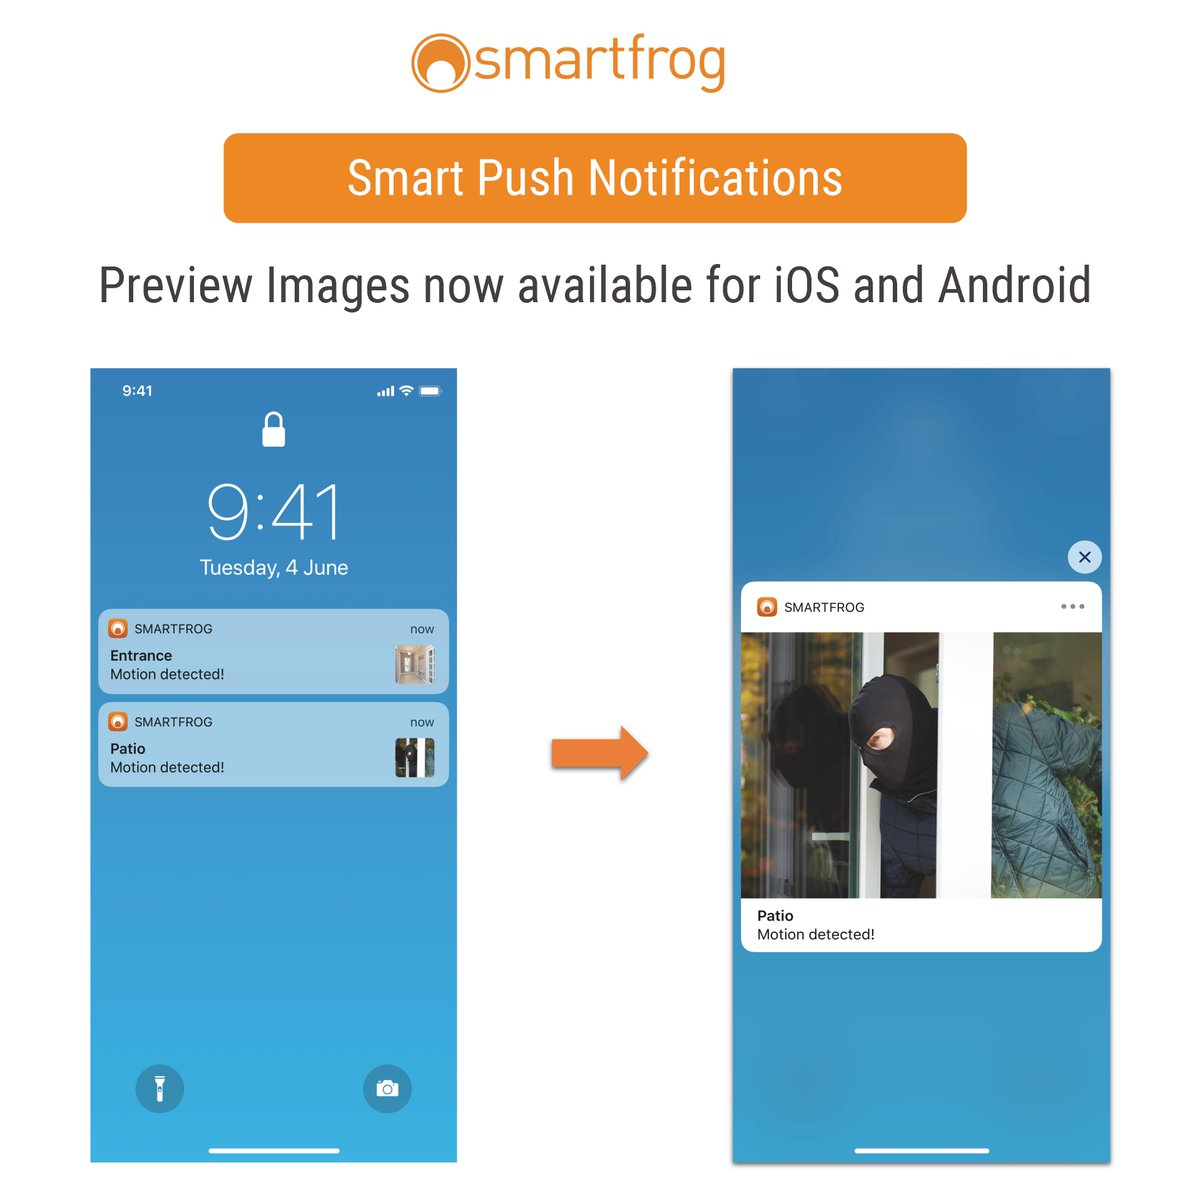 Time to update your Smartfrog App: now it is possible to see alarm push notifications which were triggered without opening the app. Whenever something moves or makes a noise, Smartfrog will notify you directly on your screen even when the app is not active. #smartfrog #update https://t.co/1jBS9otOzN